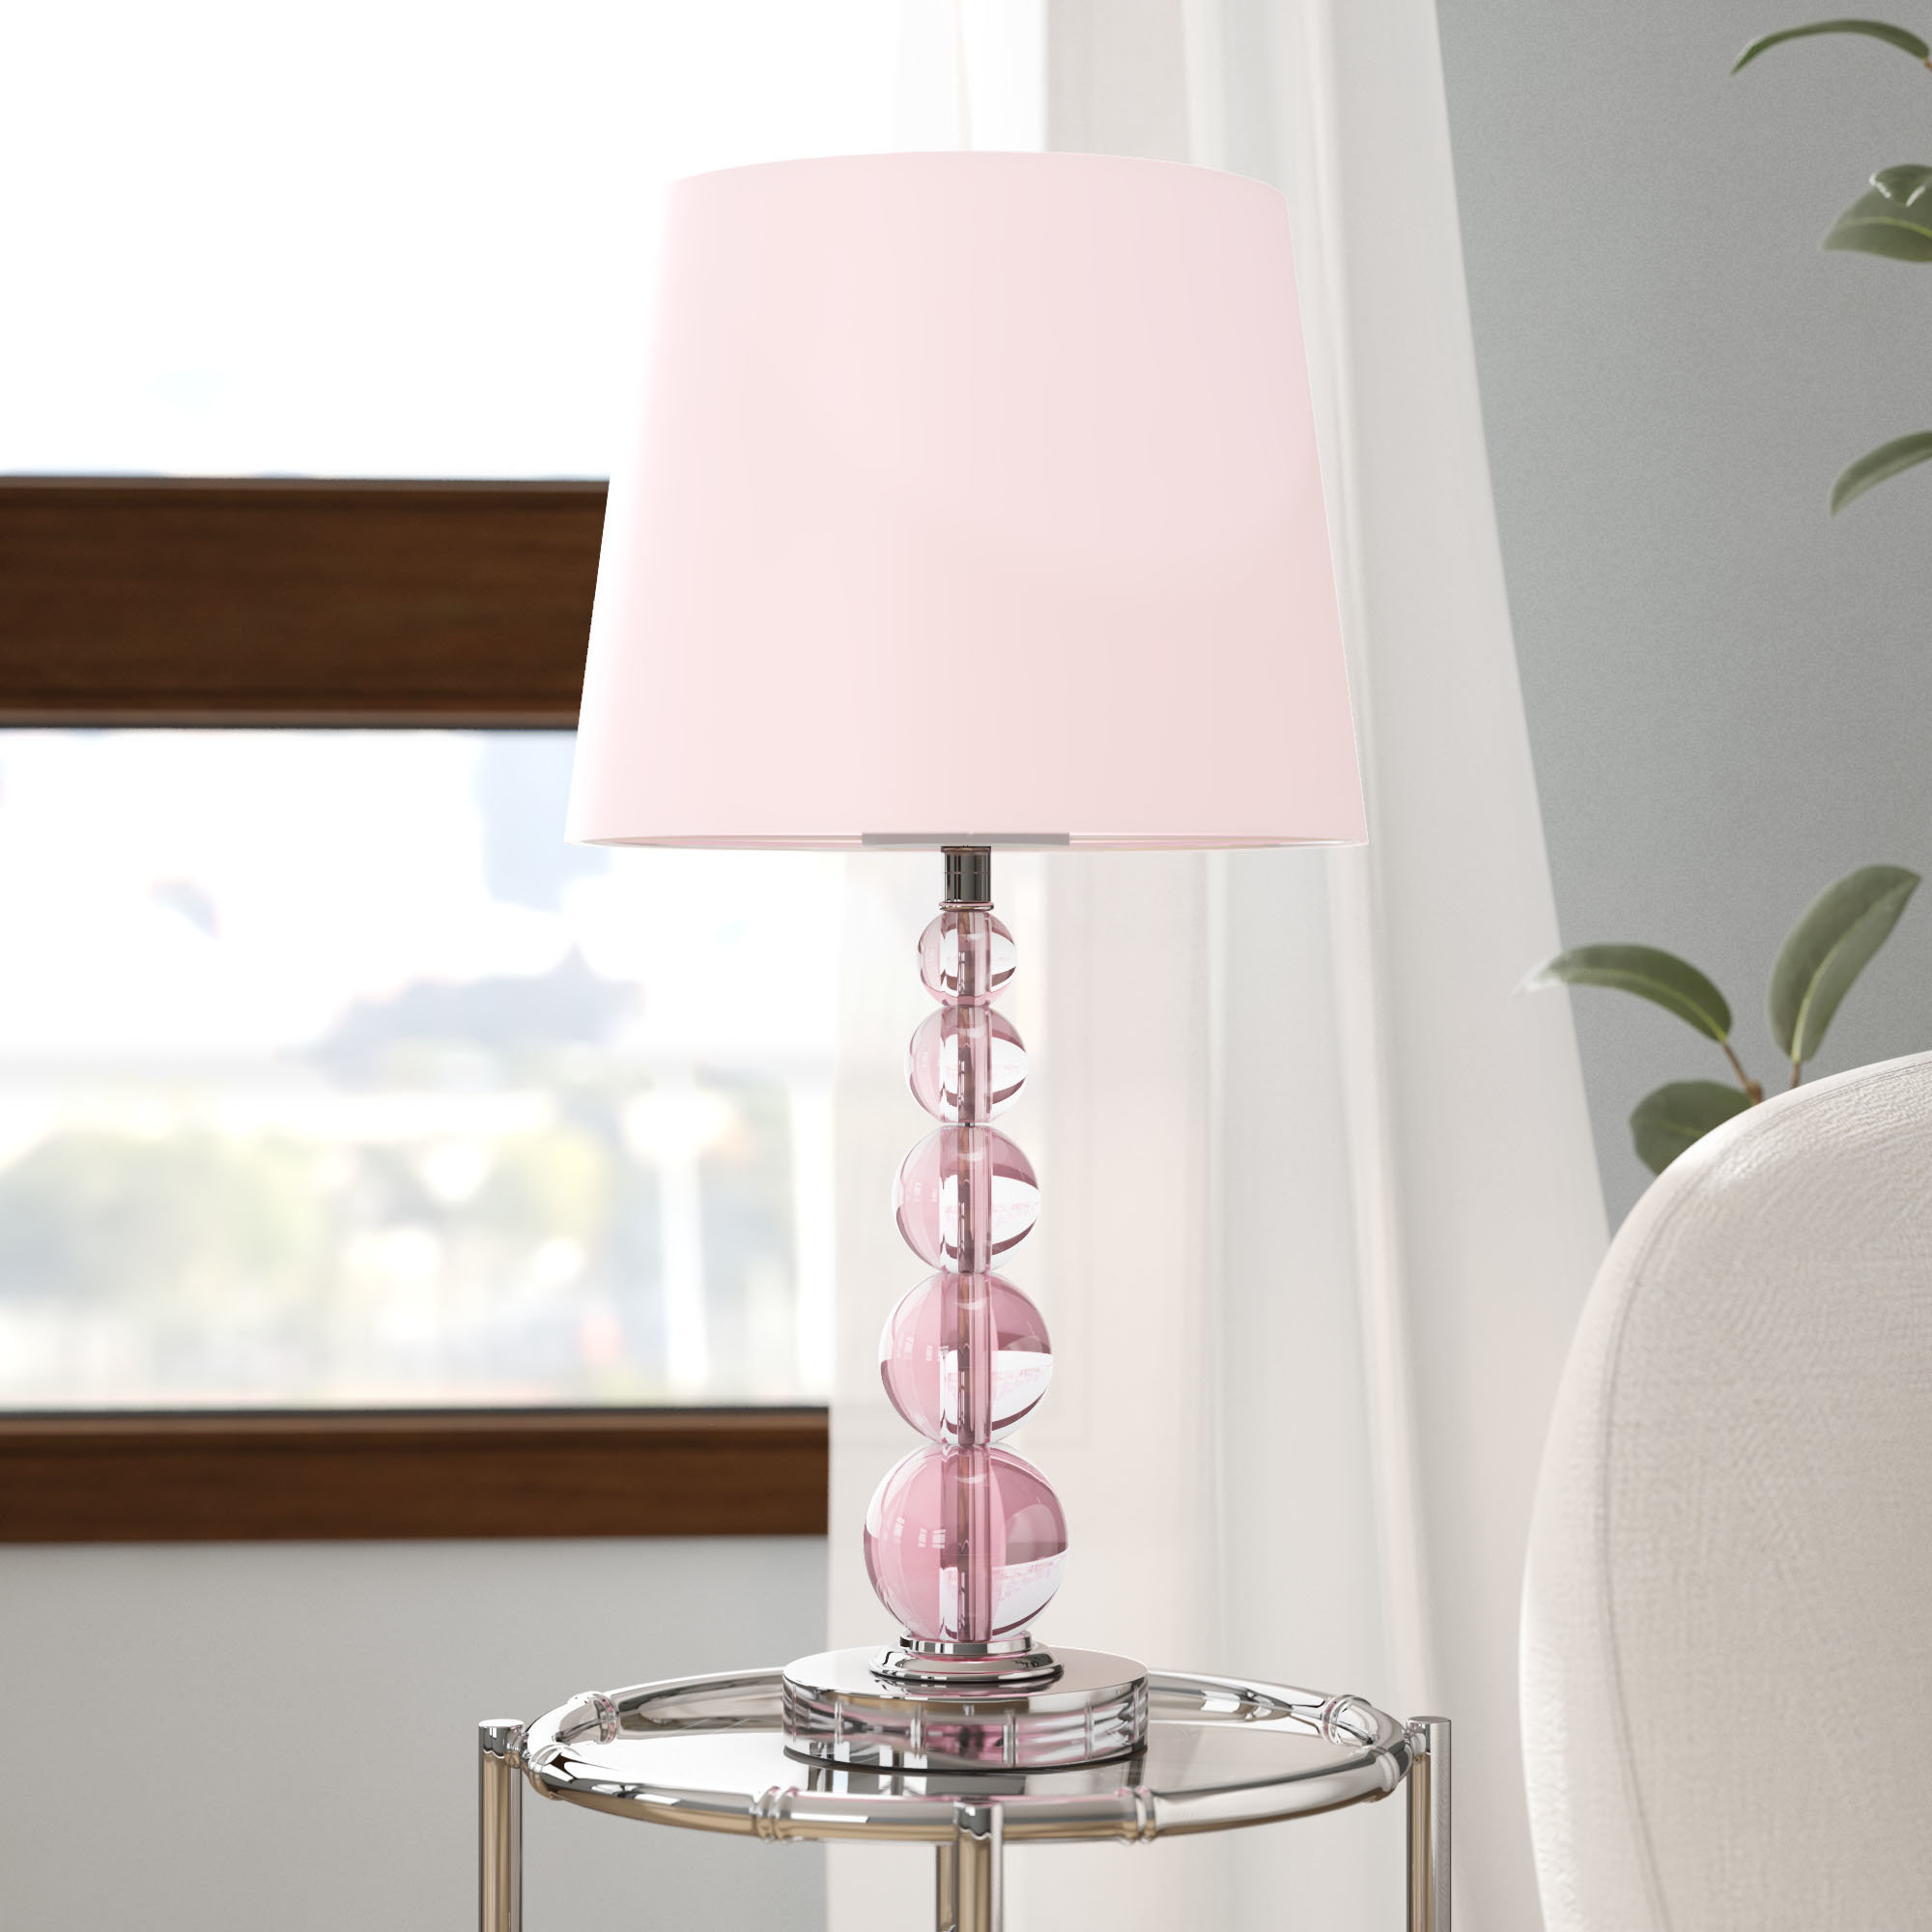 blush pink lamps ashford table lamp frosted glass cylinder accent nautical kitchen pendant lights round cloth inch tablecloth beautiful nesting tables rechargeable battery powered